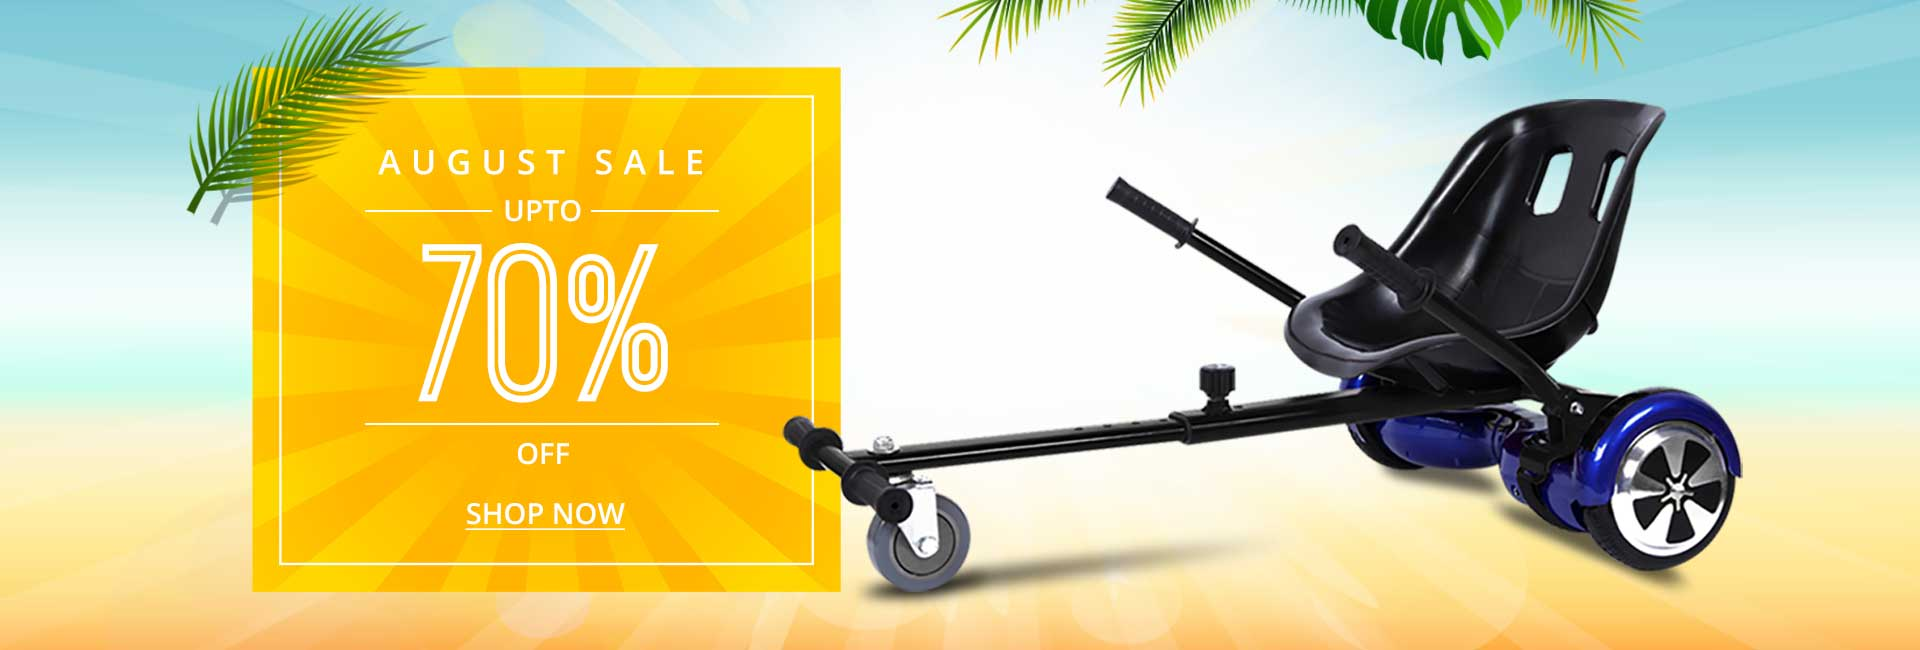 hoverboard-summer-sale